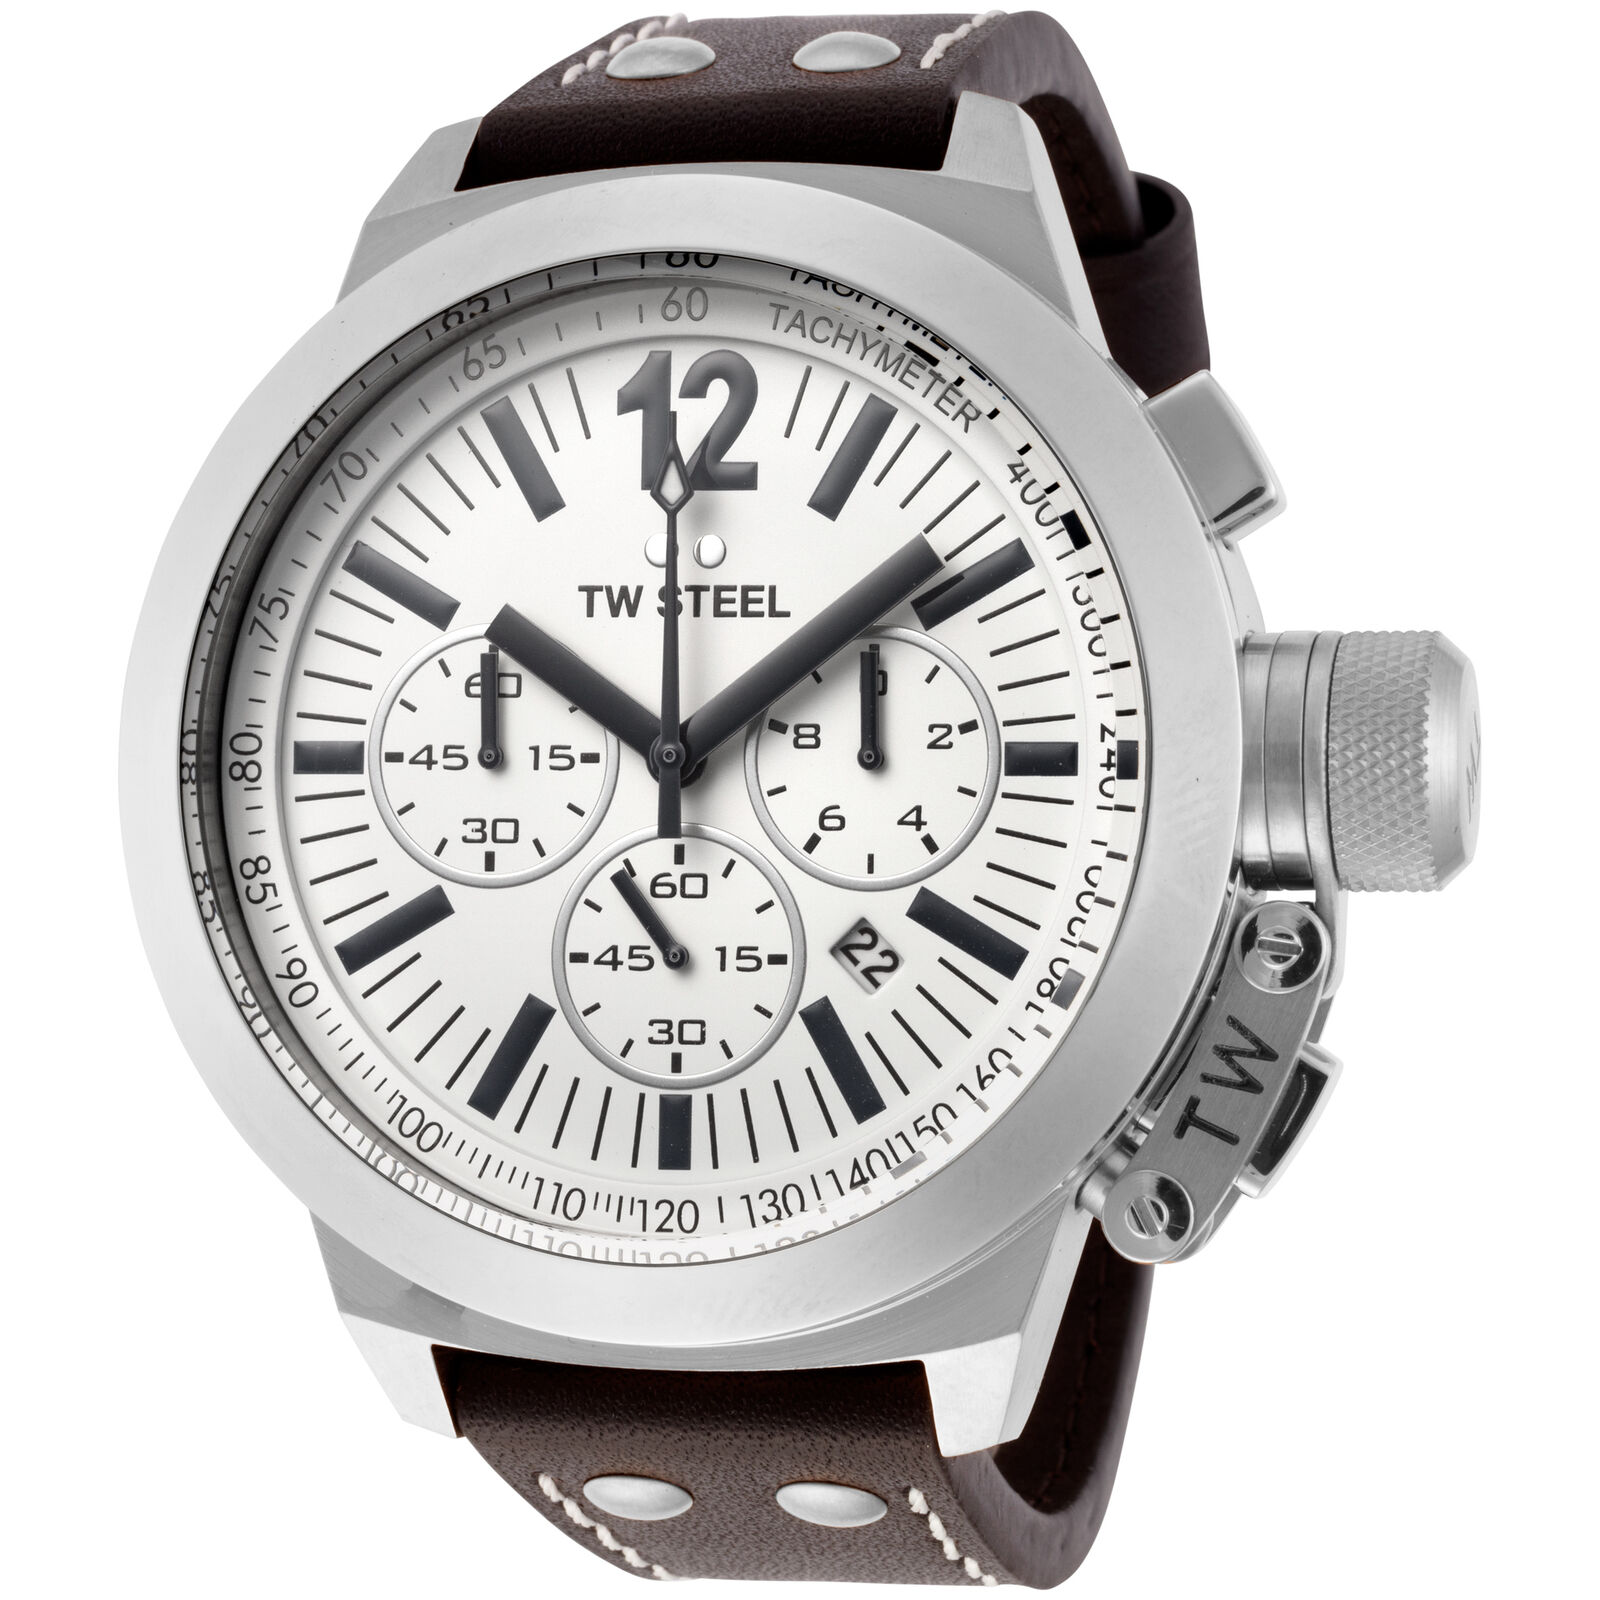 c5f3c5e047e Details about TW Steel CE1008 Men s Canteen Chronograph 50mm White Dial  Leather Watch